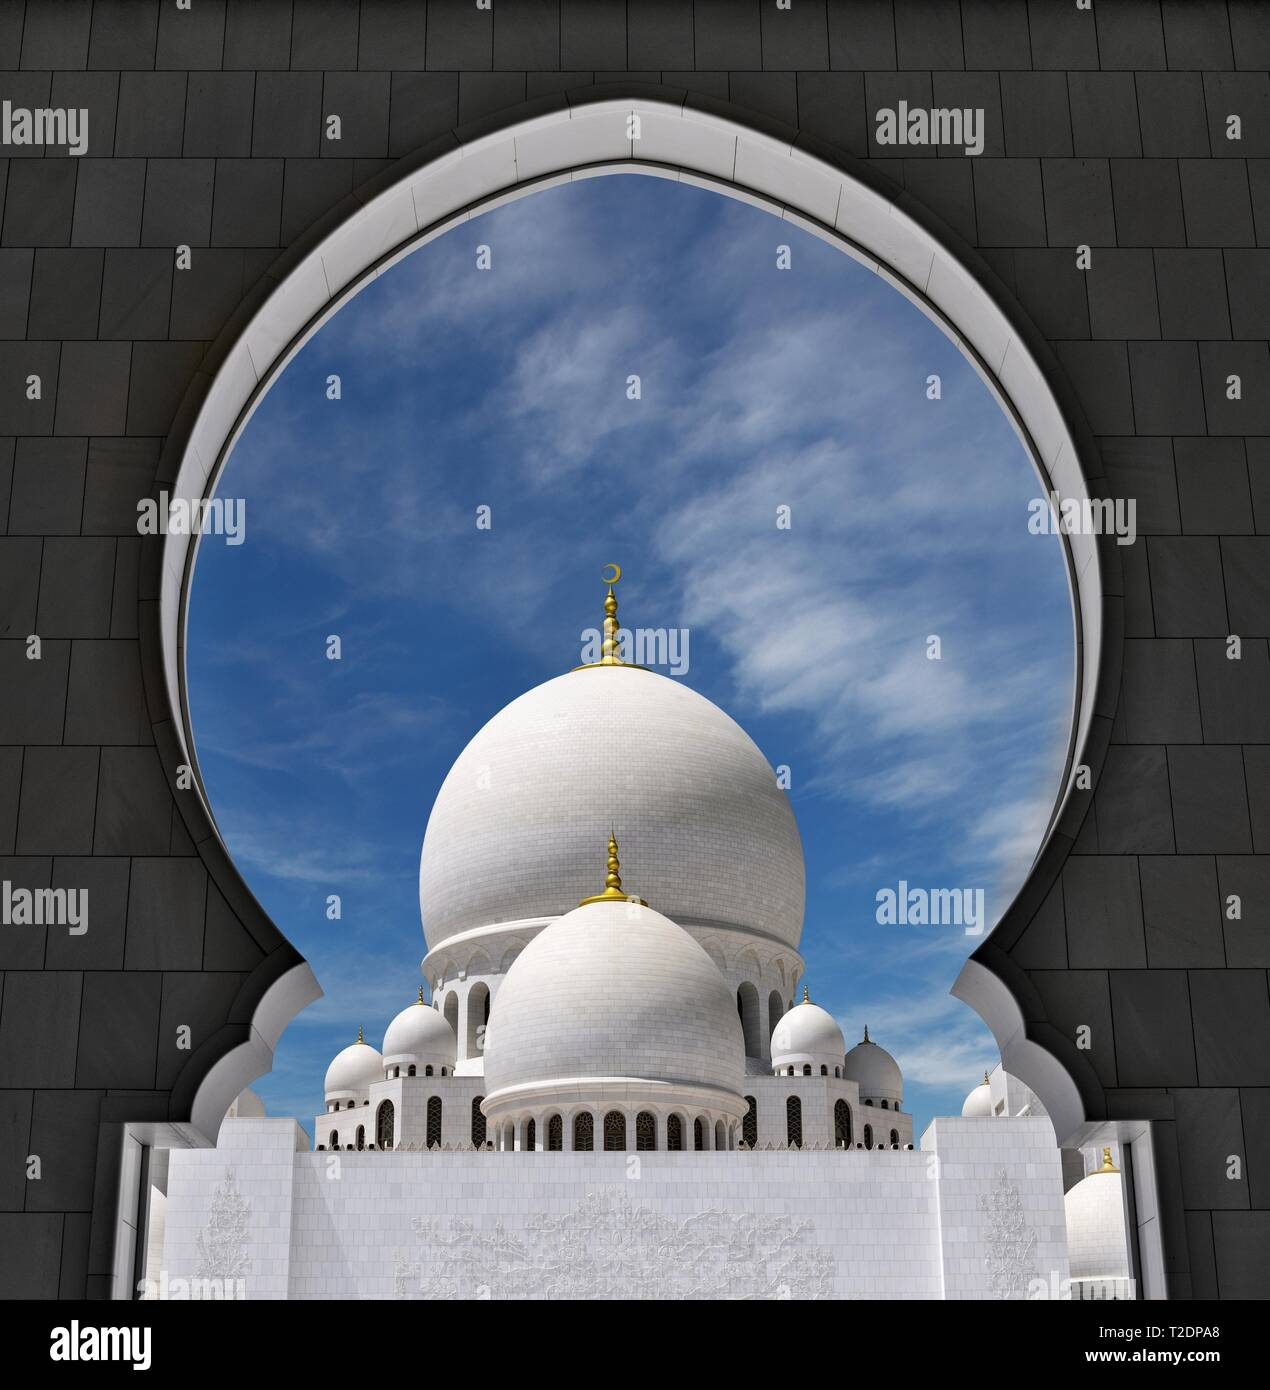 Cupola of the Sheikh Zayed Grand Mosque, Abu Dhabi - Stock Image